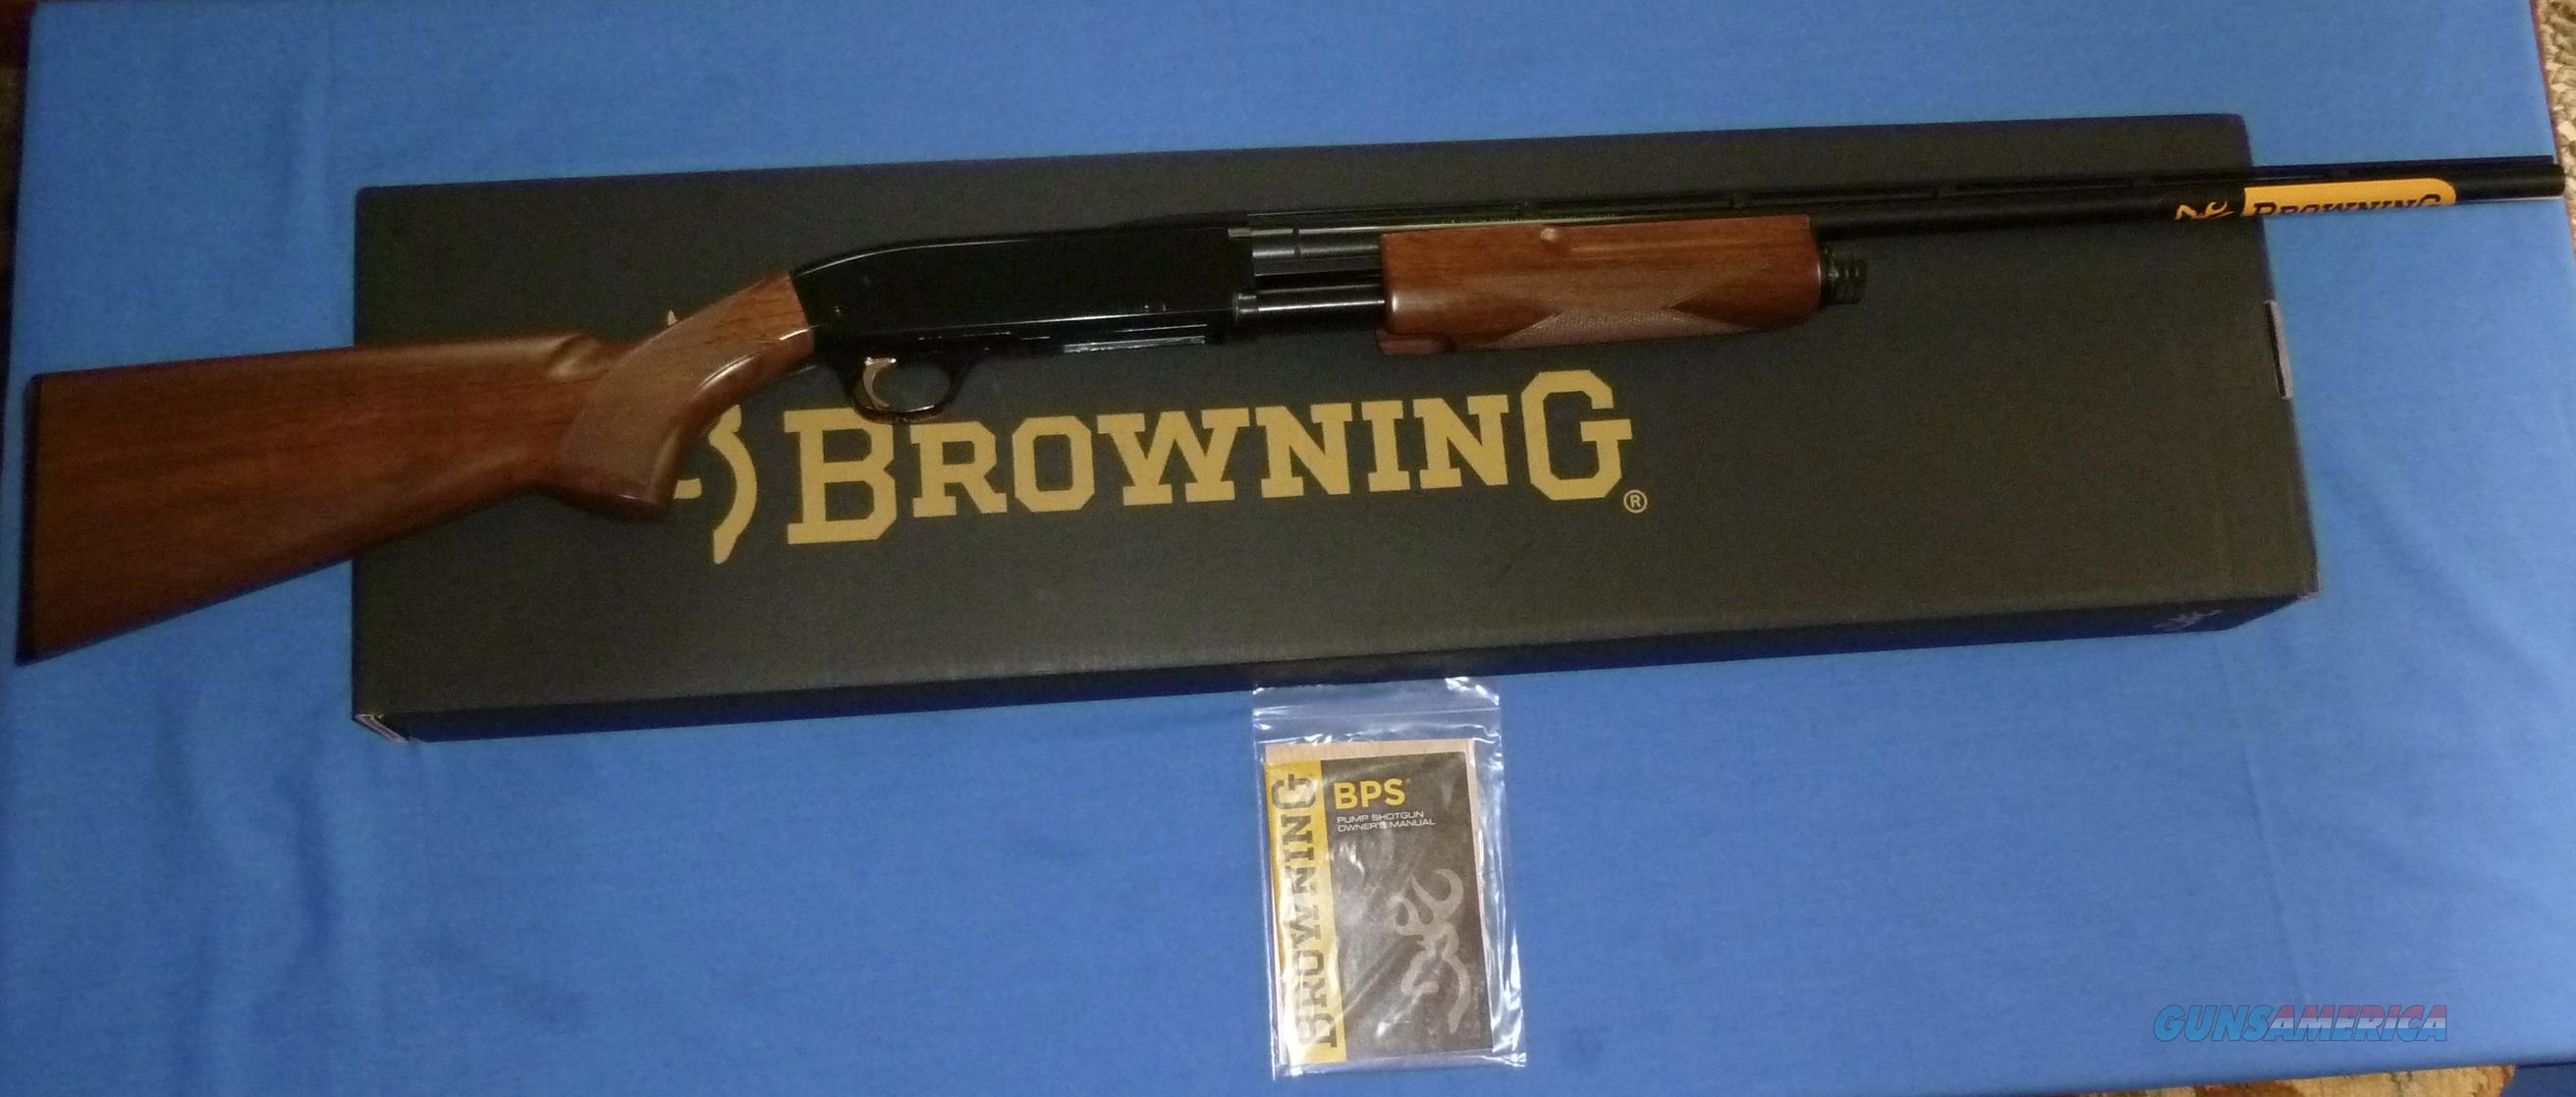 BROWNING BPS HUNTER 28 GAUGE PUMP SHOTGUN NEW!  Guns > Shotguns > Browning Shotguns > Pump Action > Hunting